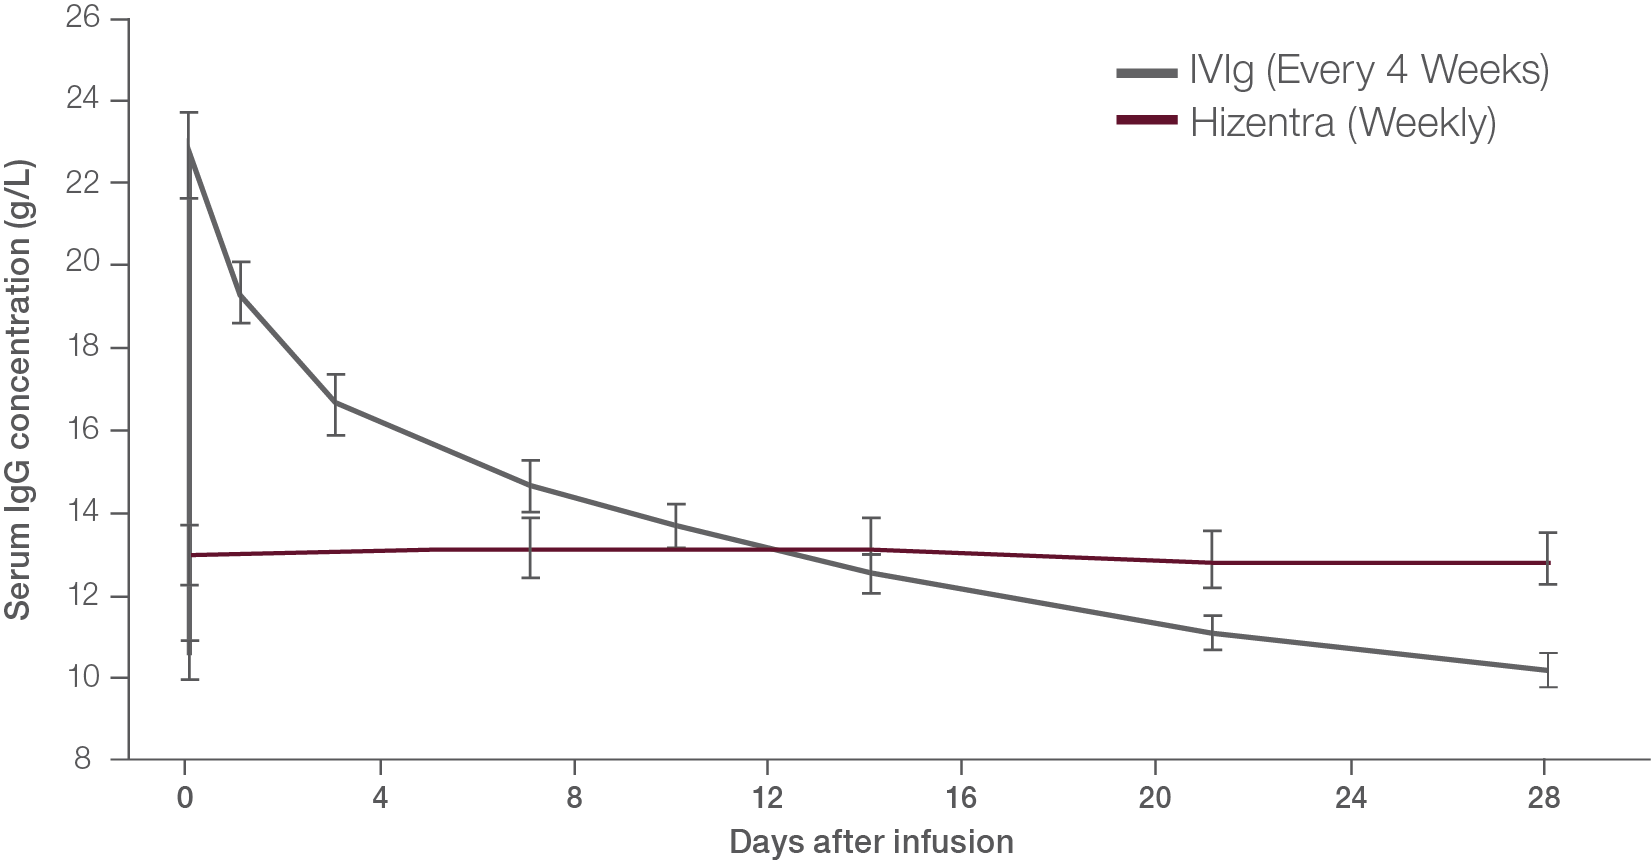 Chart plotting Hizentra steady-state Ig levels vs IVIg every 4 weeks